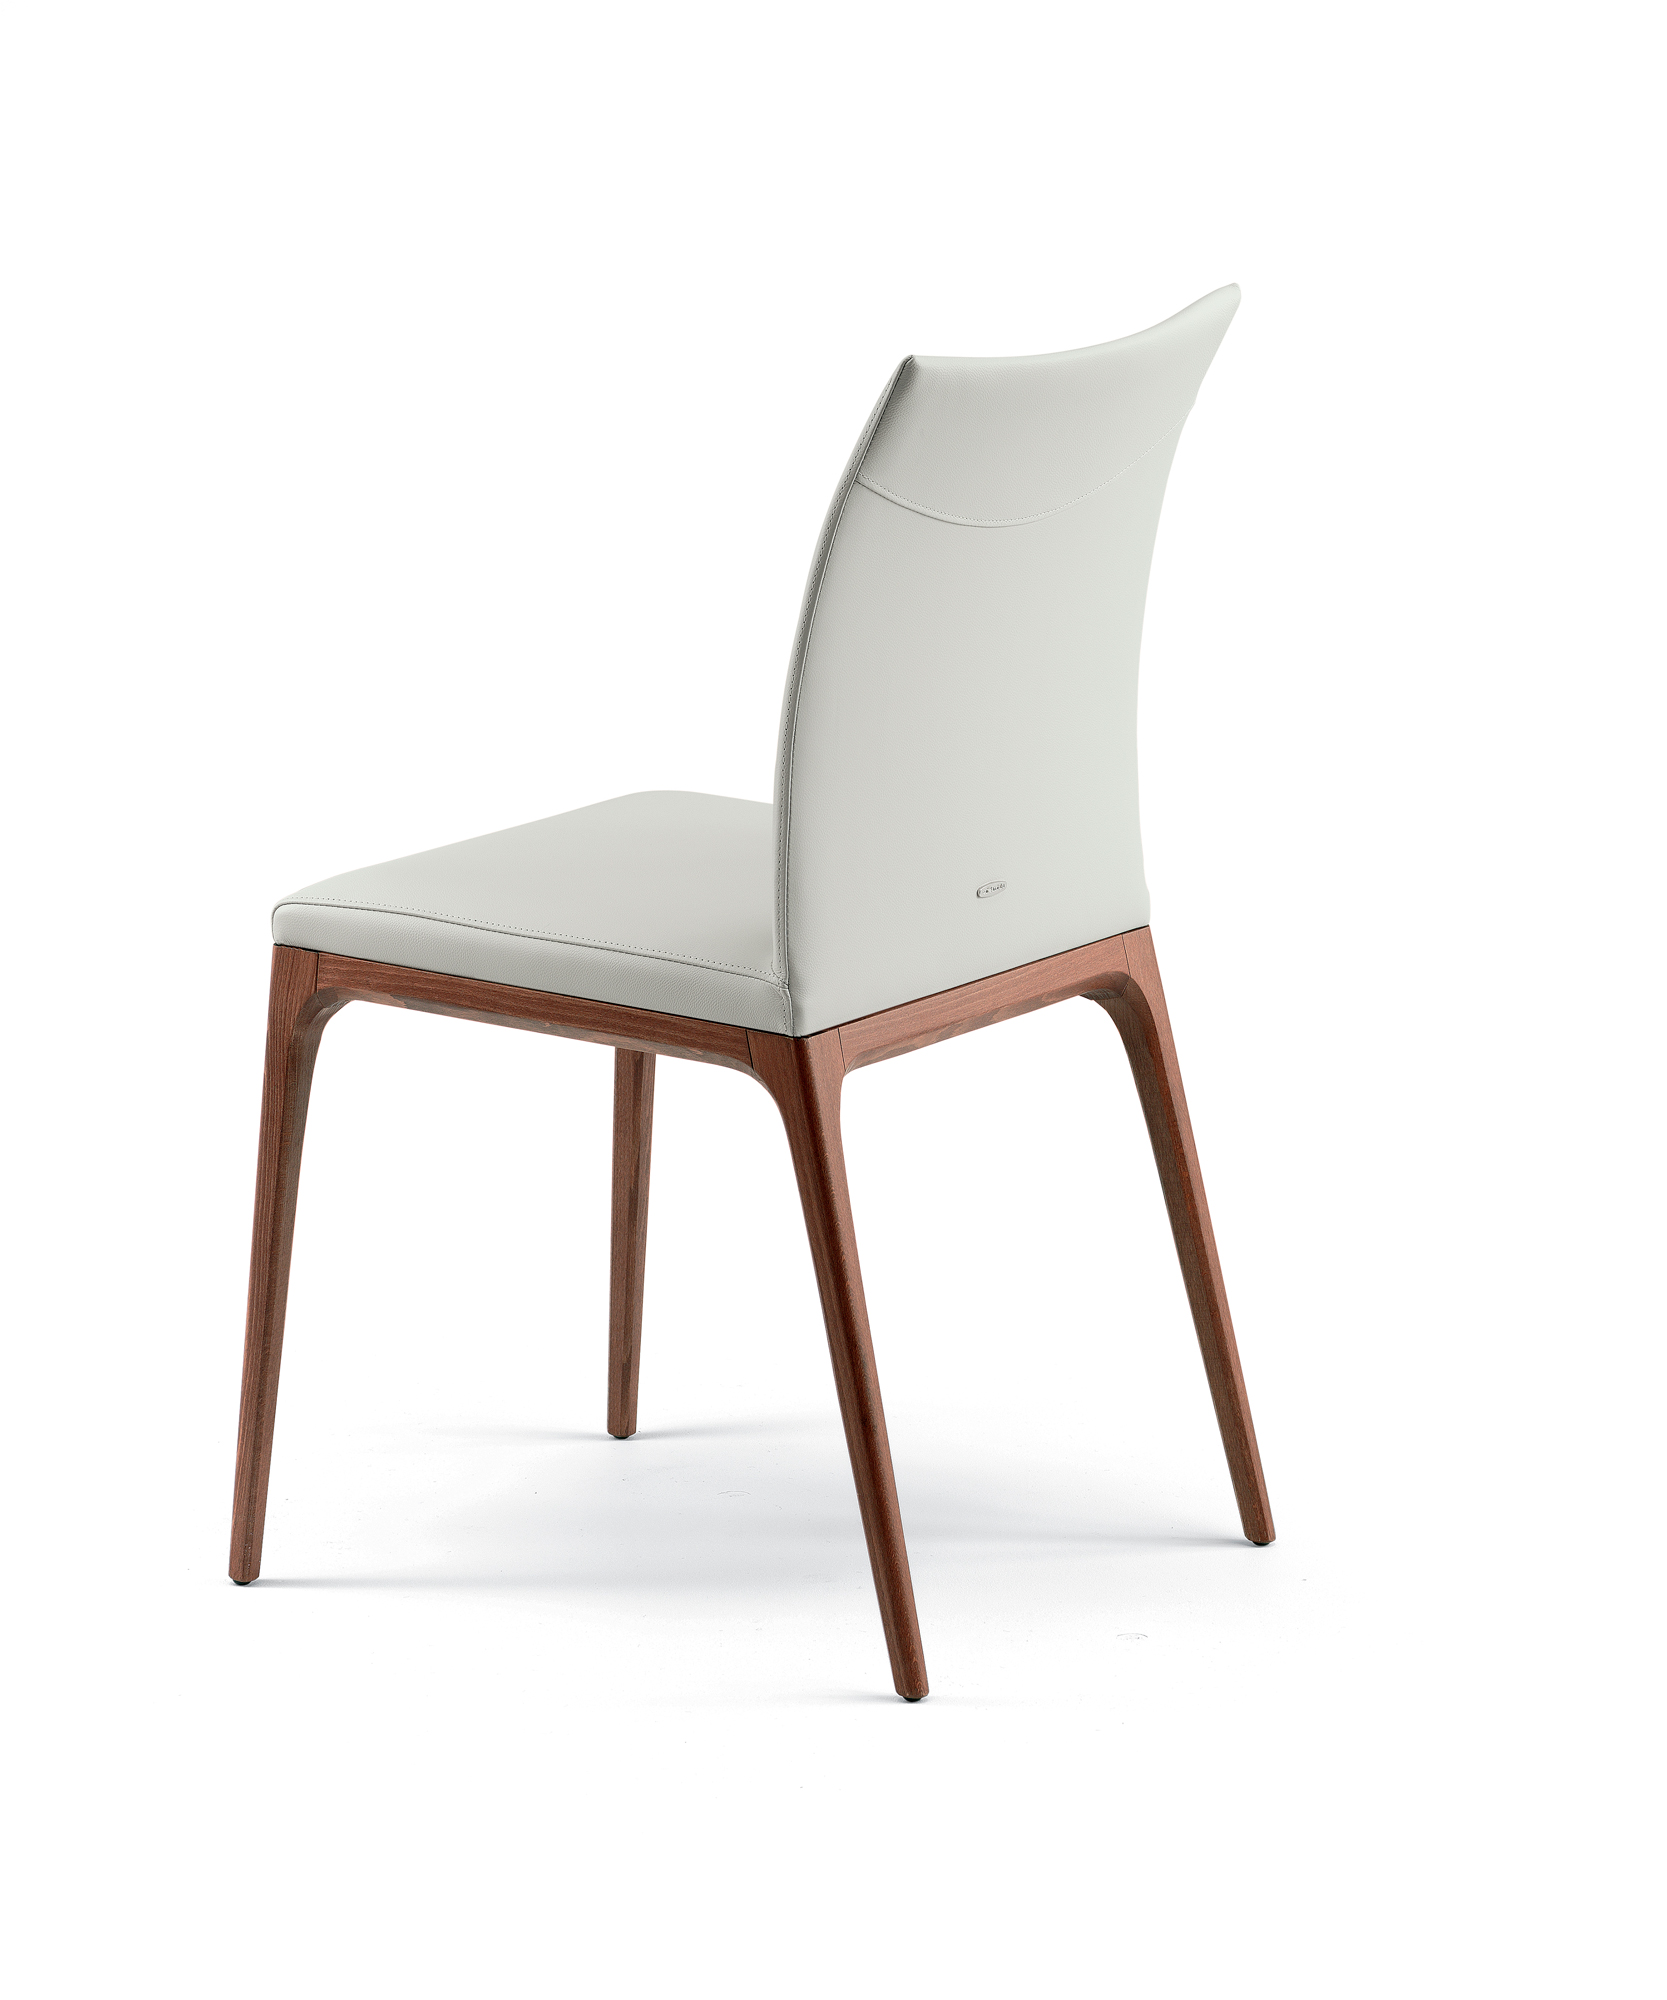 Luxury italian arcadia chair italian designer luxury for Contemporary designer dining chairs